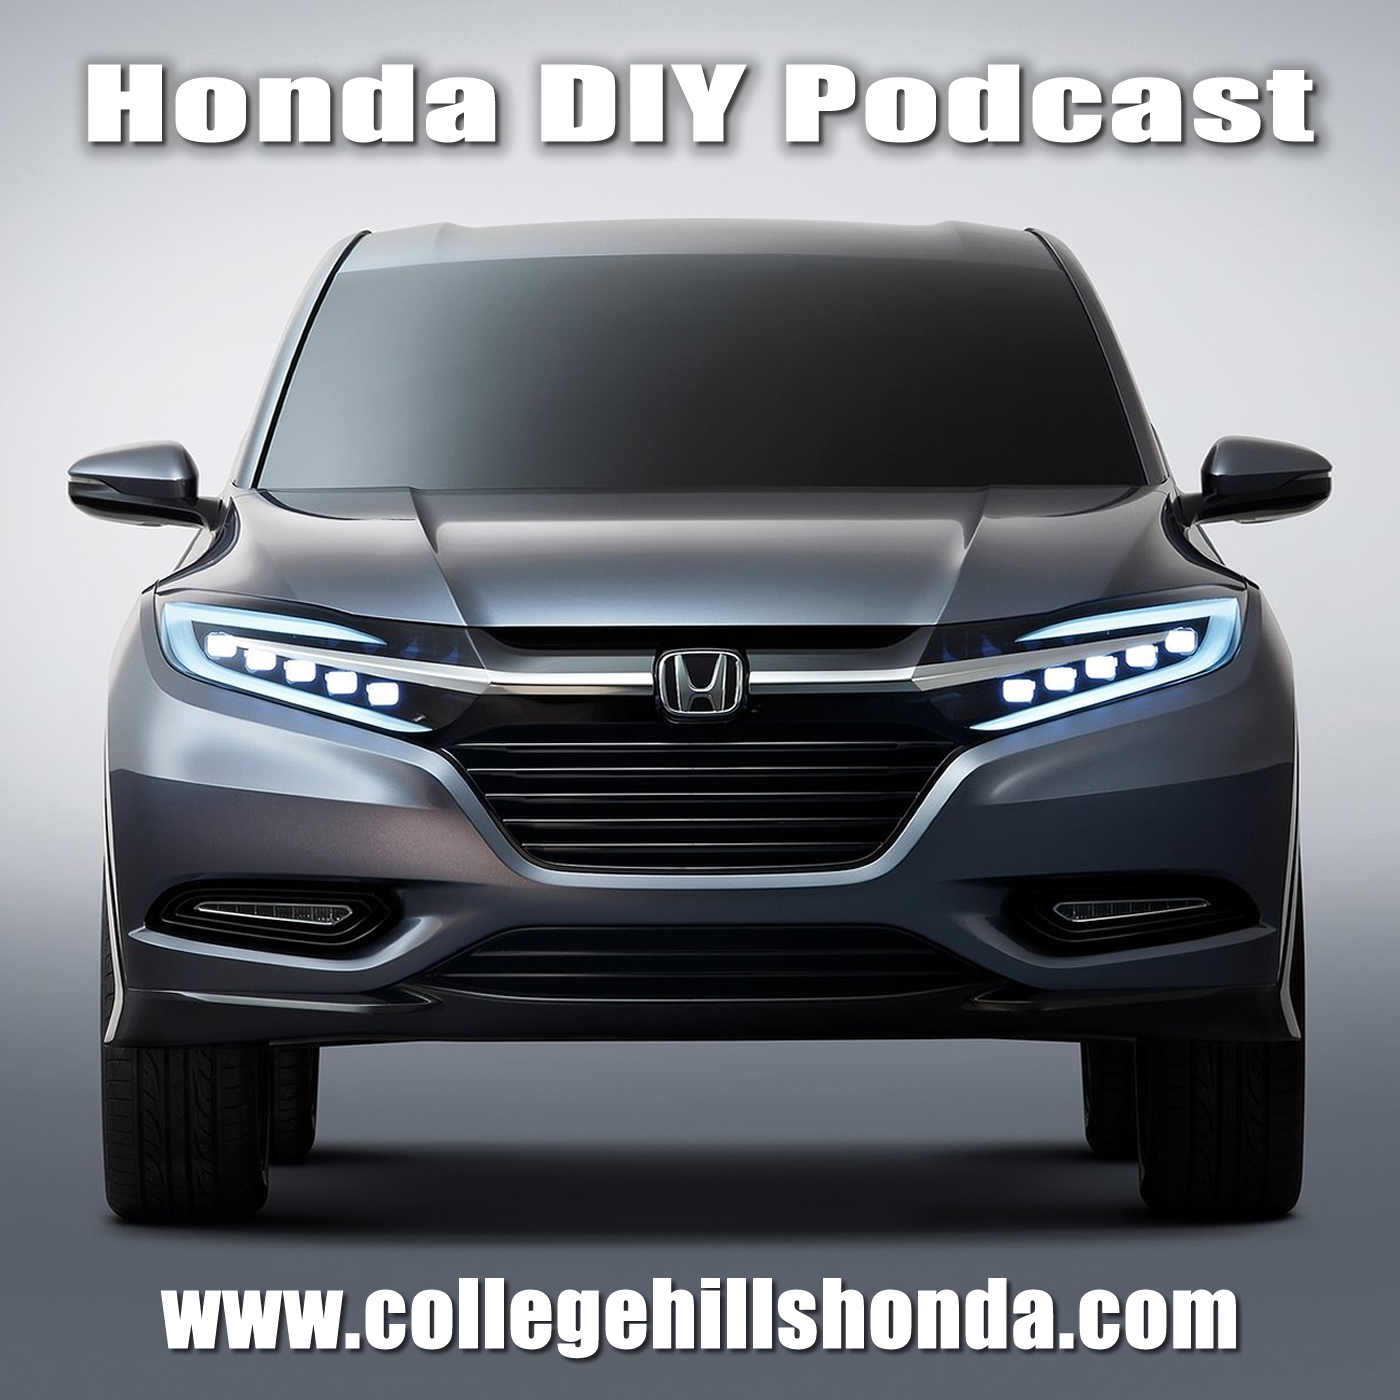 Honda Podcast: Honda DIY and More (Small)